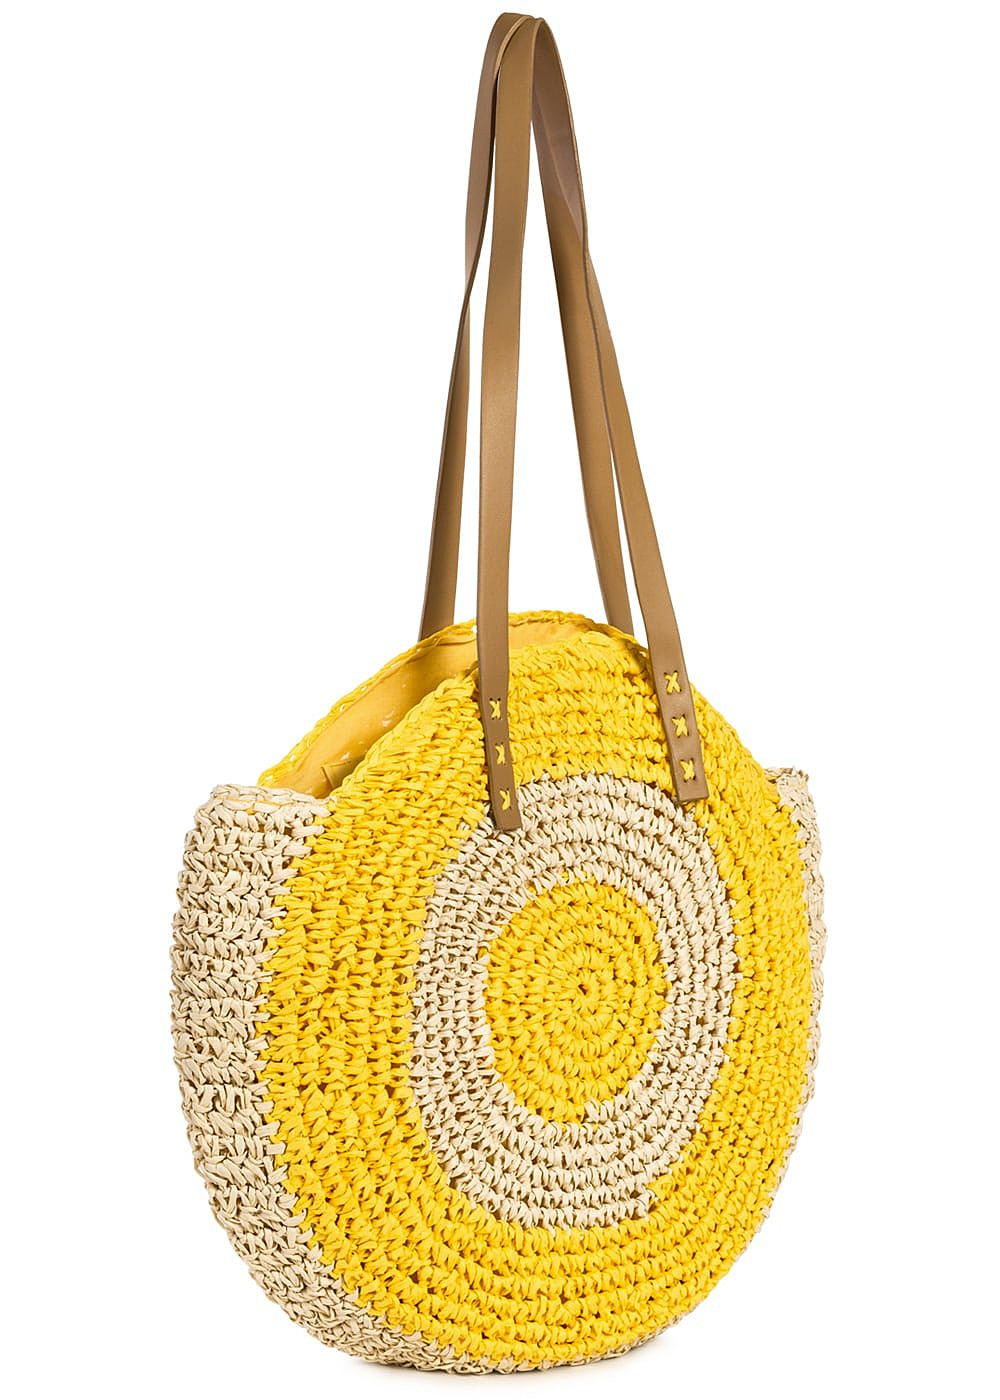 Styleboom Fashion Damen 2-Tone Basket Circle Shopper gelb beige - Art.-Nr.: 19062487-OS-YE